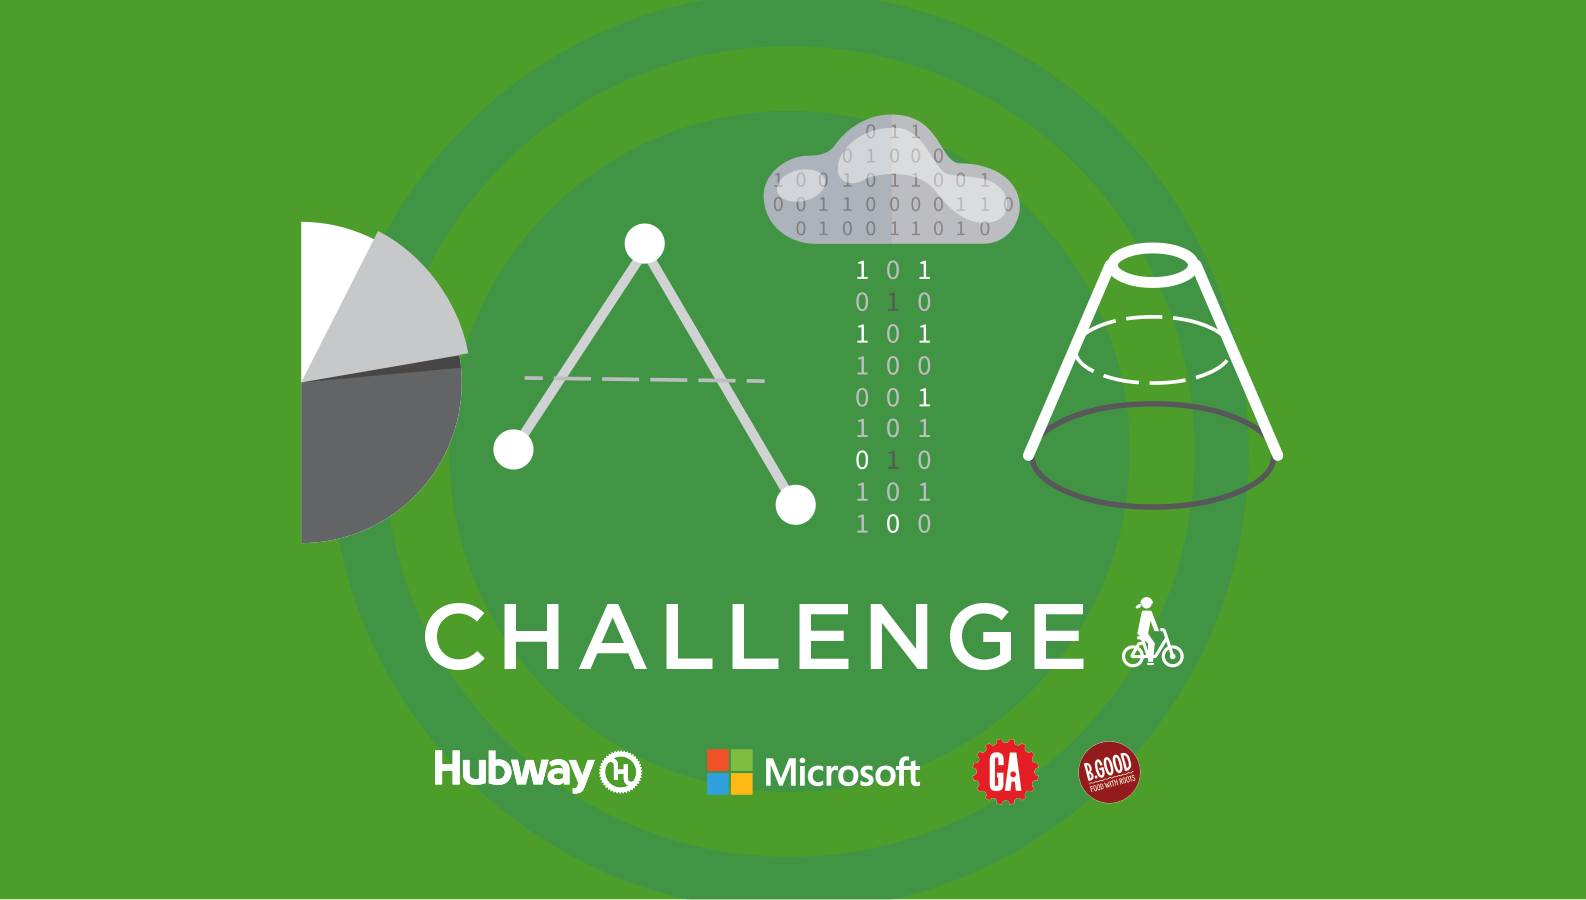 Data Challenge Graphic W All Sponsors